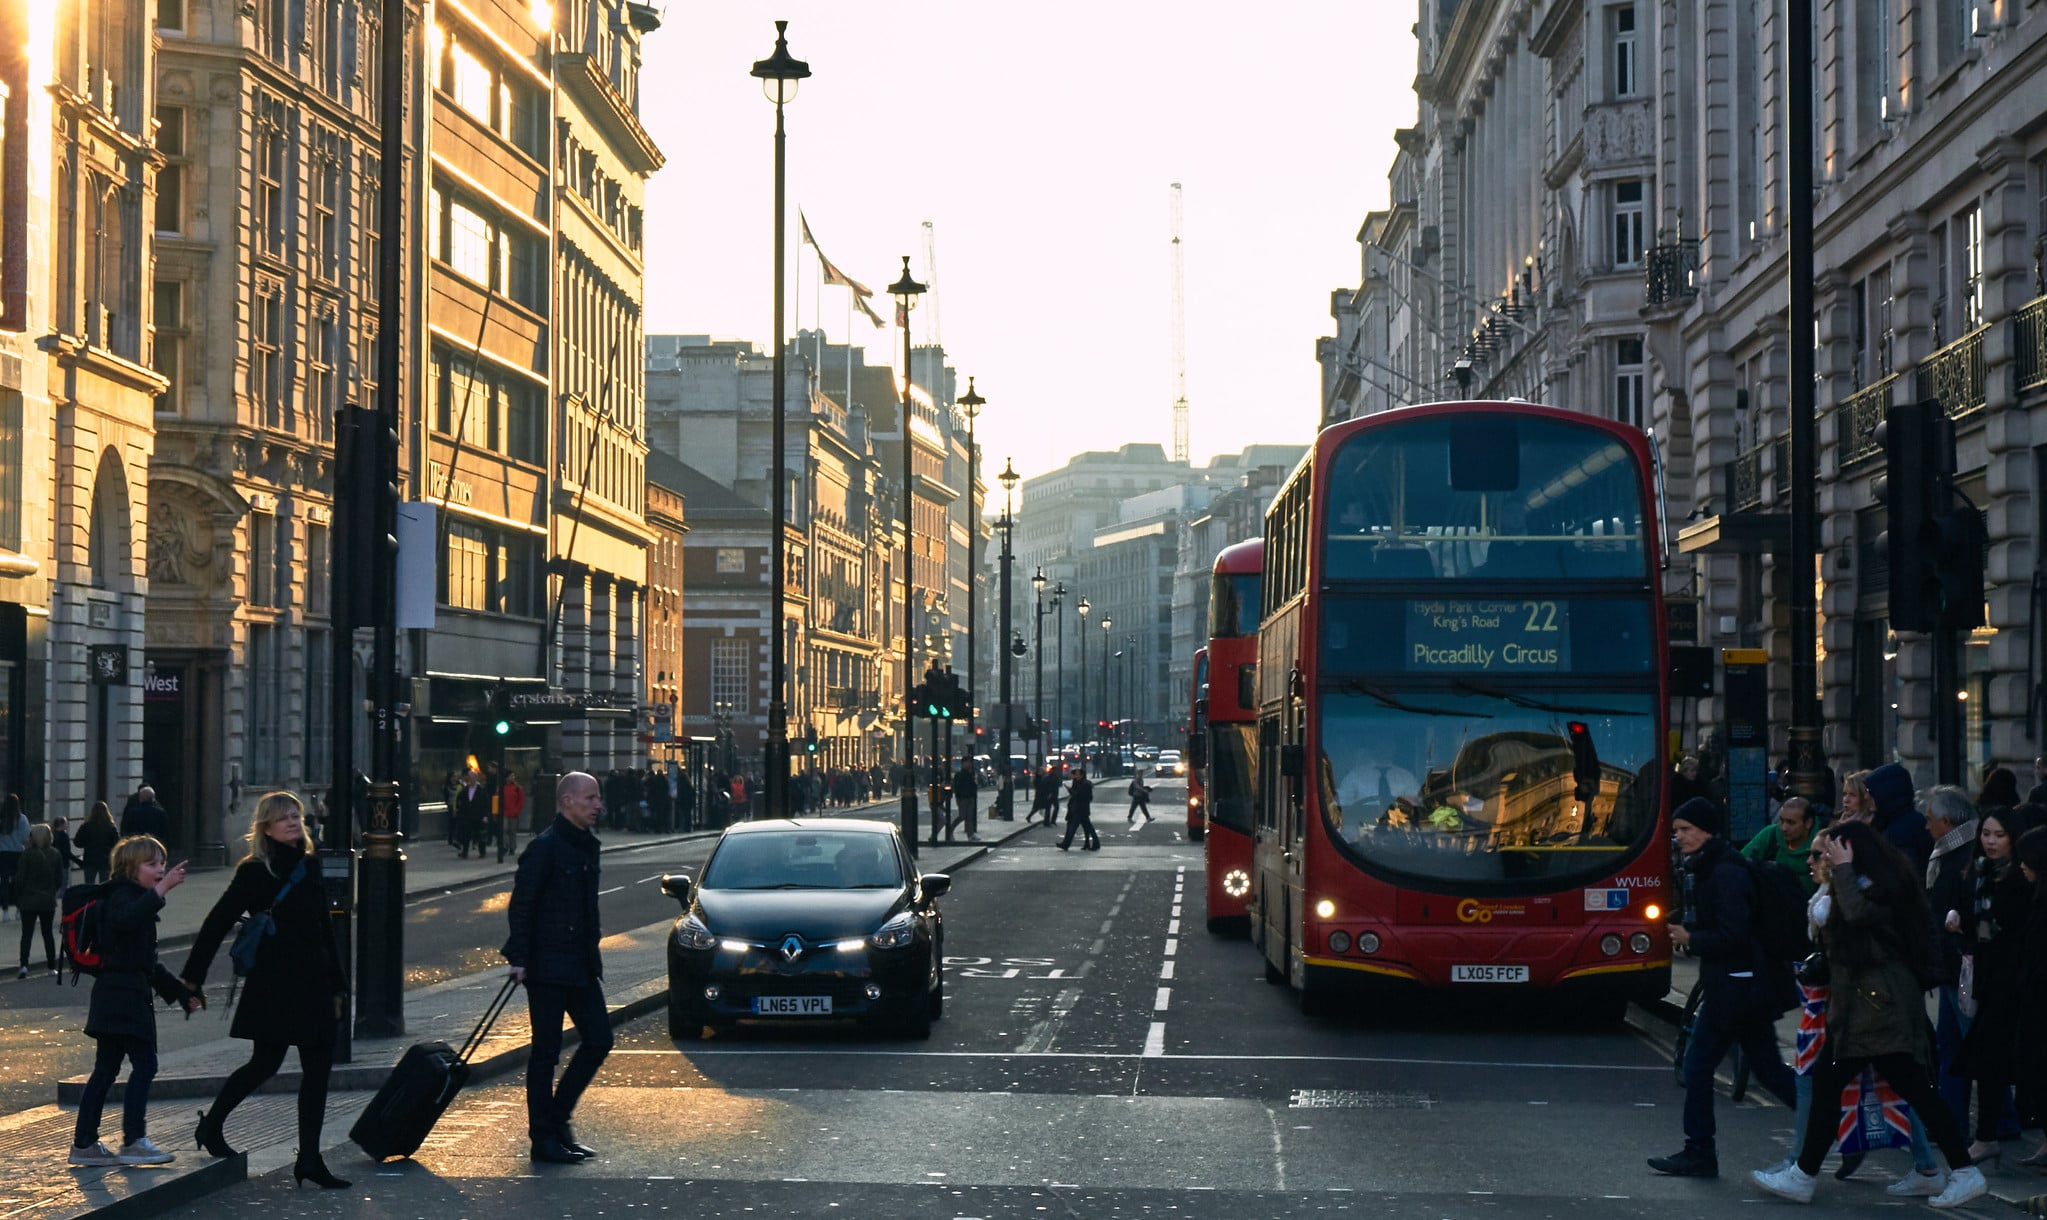 When it comes to London transportation, the double decker buses are you friend